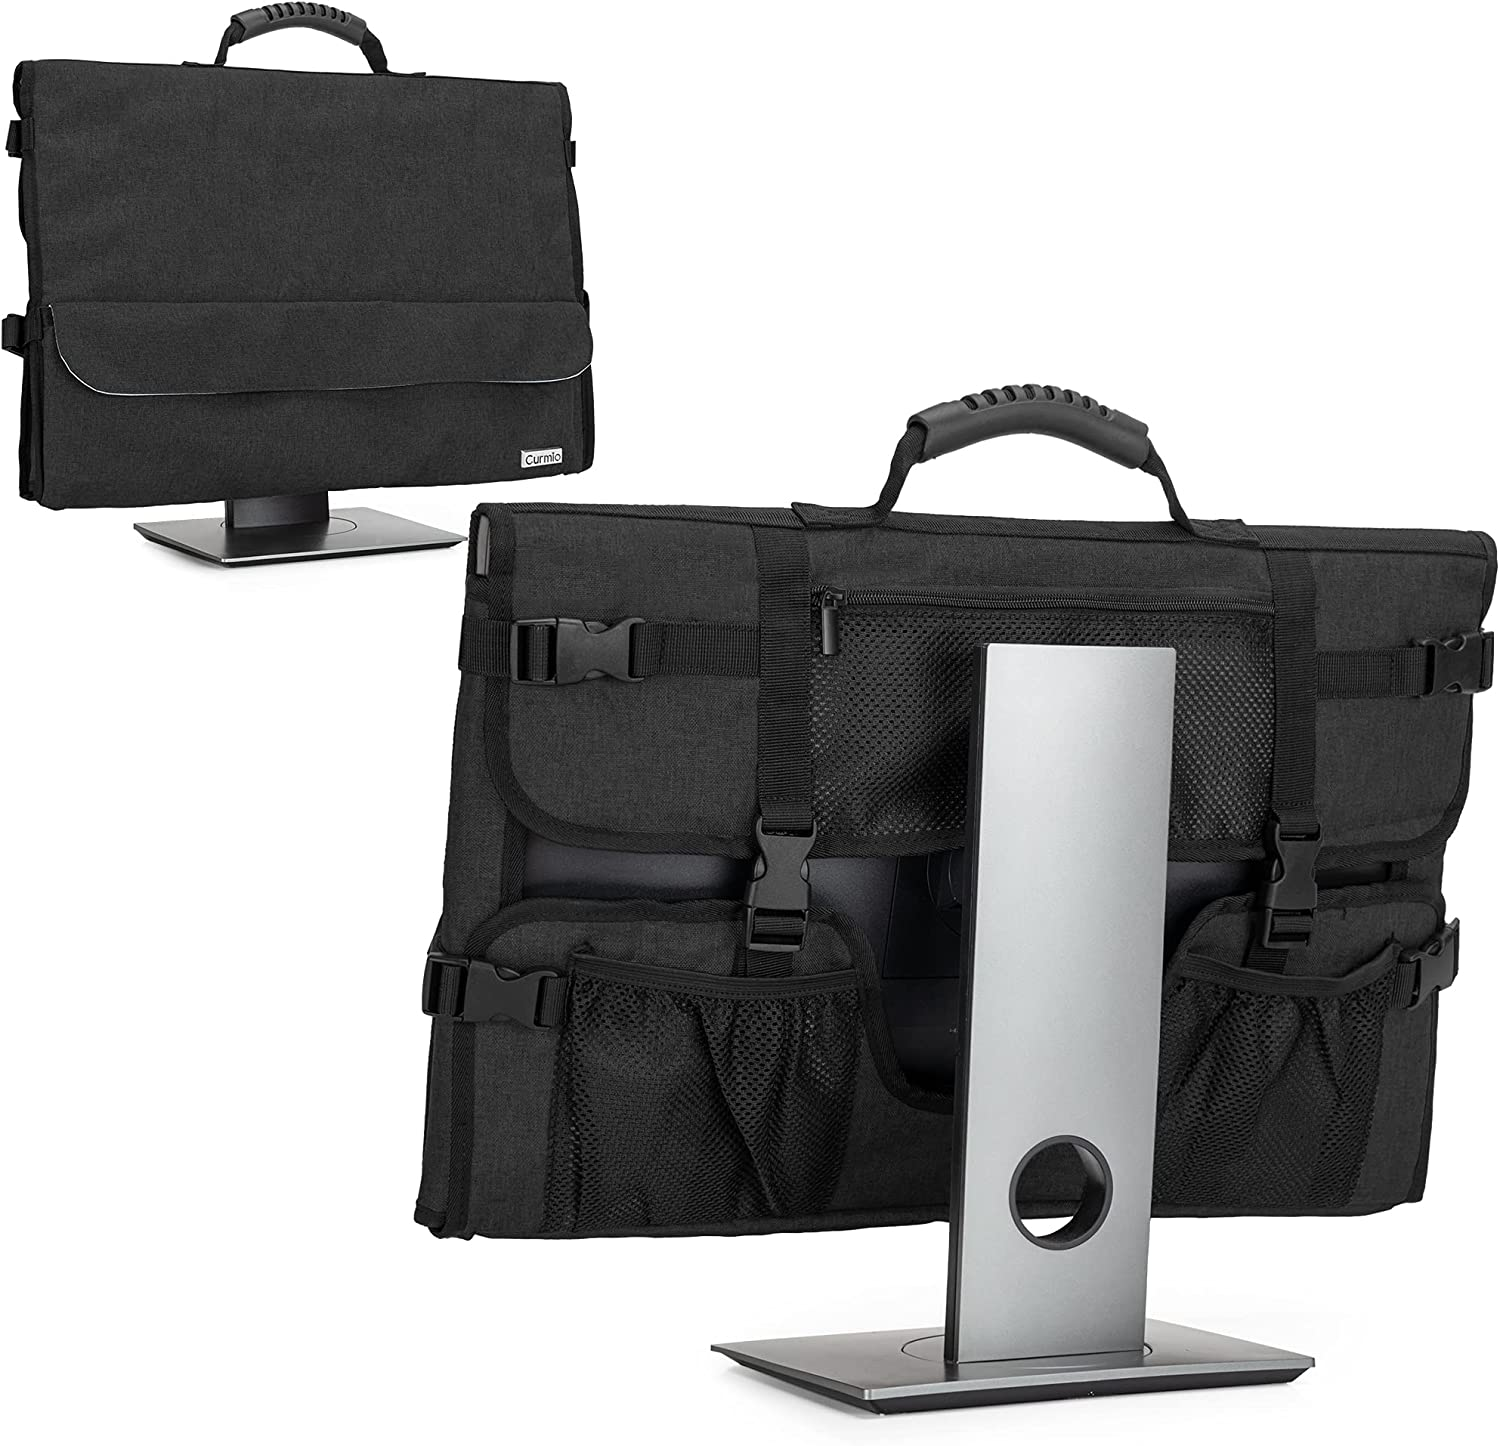 CURMIO Computer Monitor Carrying Case for 24 Inch Monitor, Computer Screen Dust Cover with Rubber Handle and Pockets, Black (Patented Design)